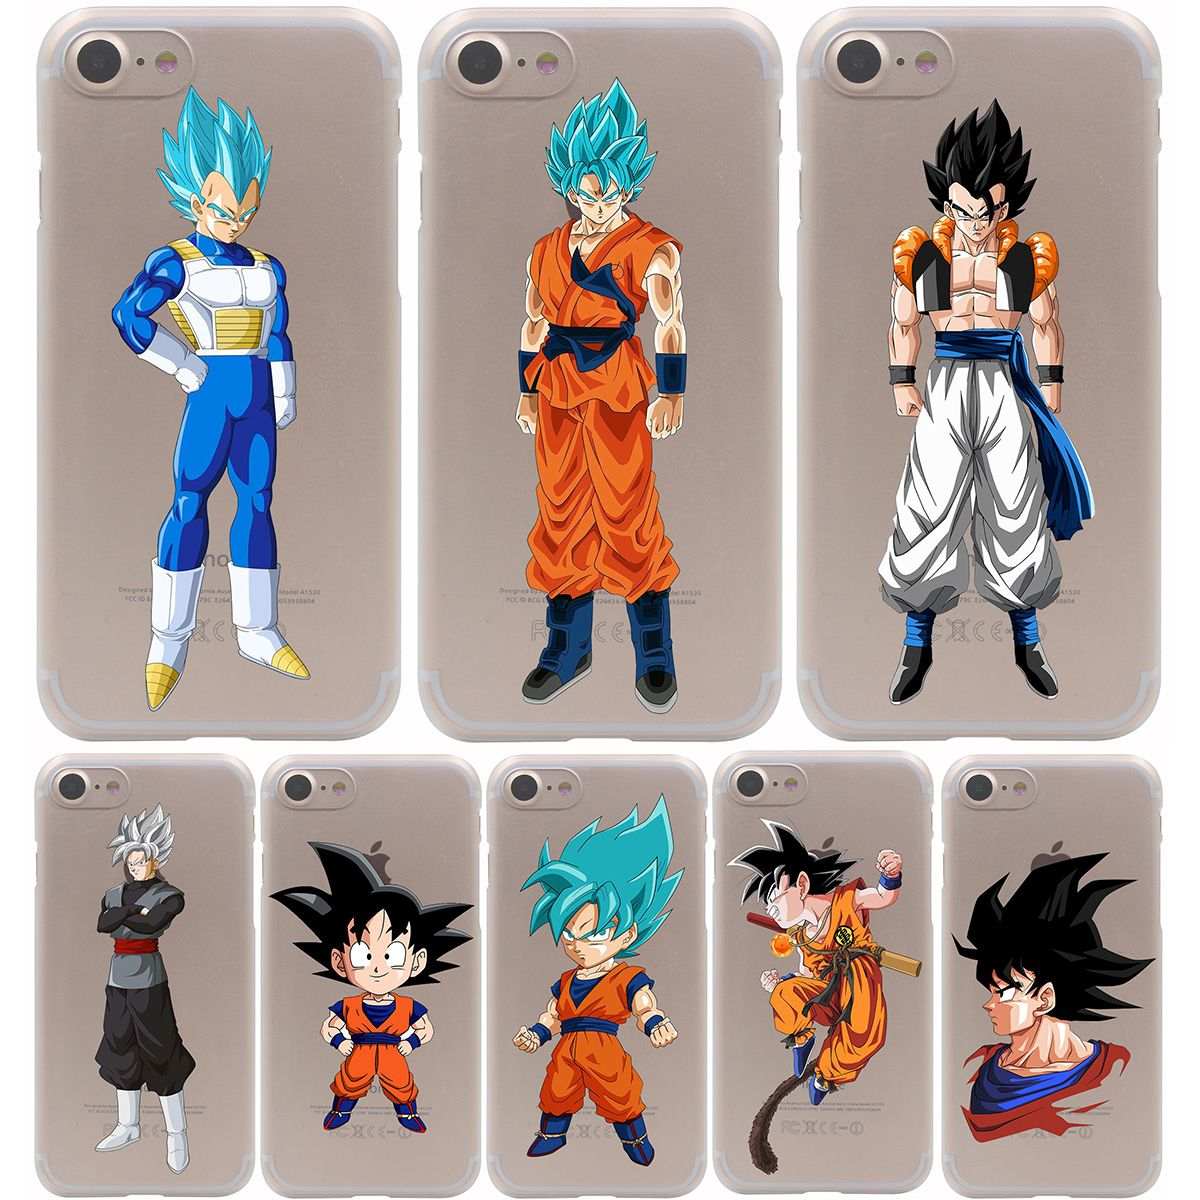 dragon ball z phone case iphone 7